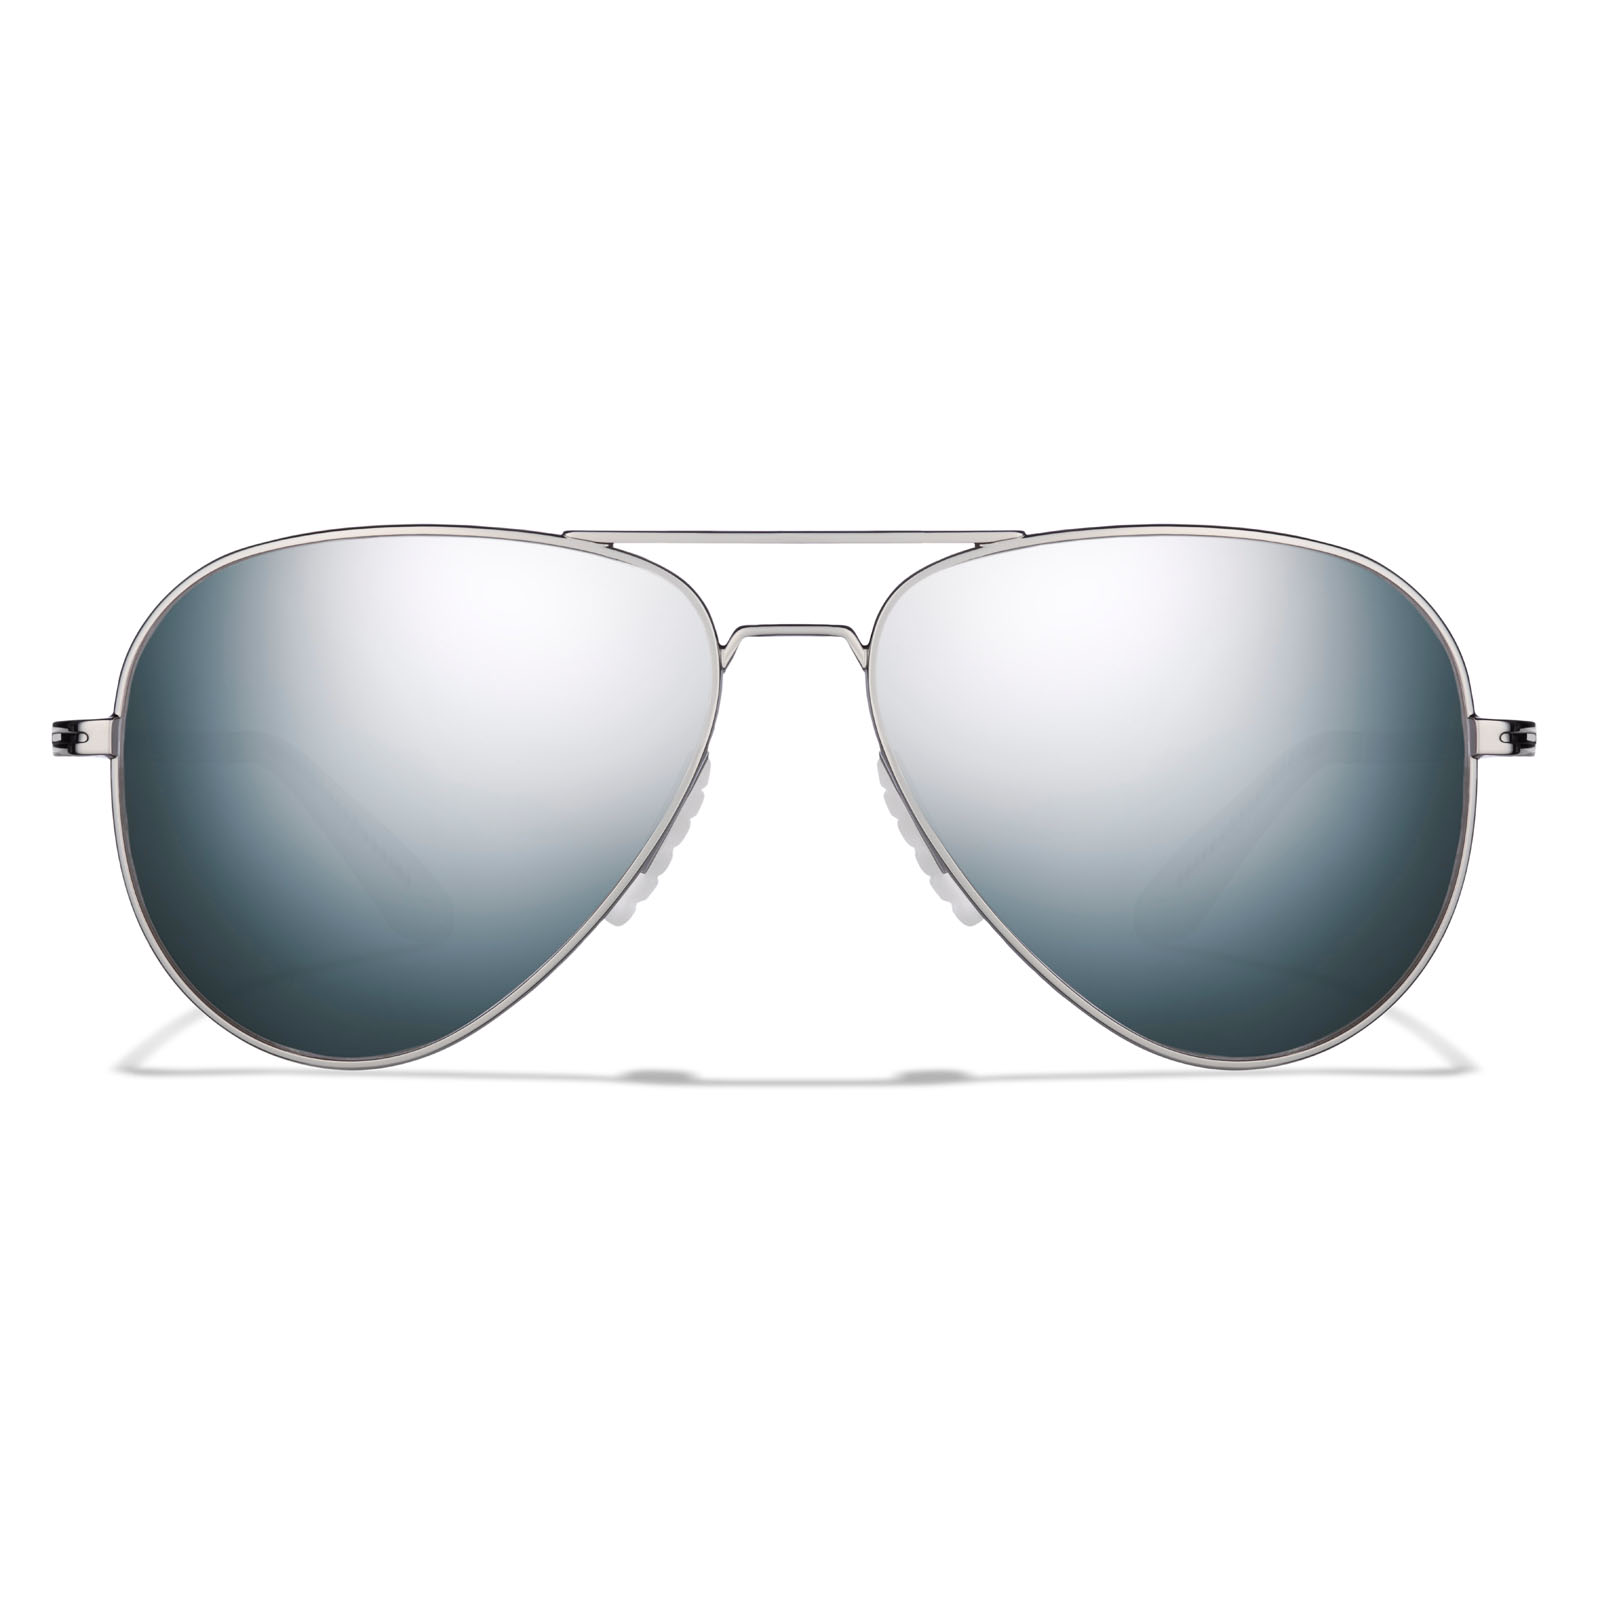 Straight on view of phanton silver frame, dark arctic mirror lens